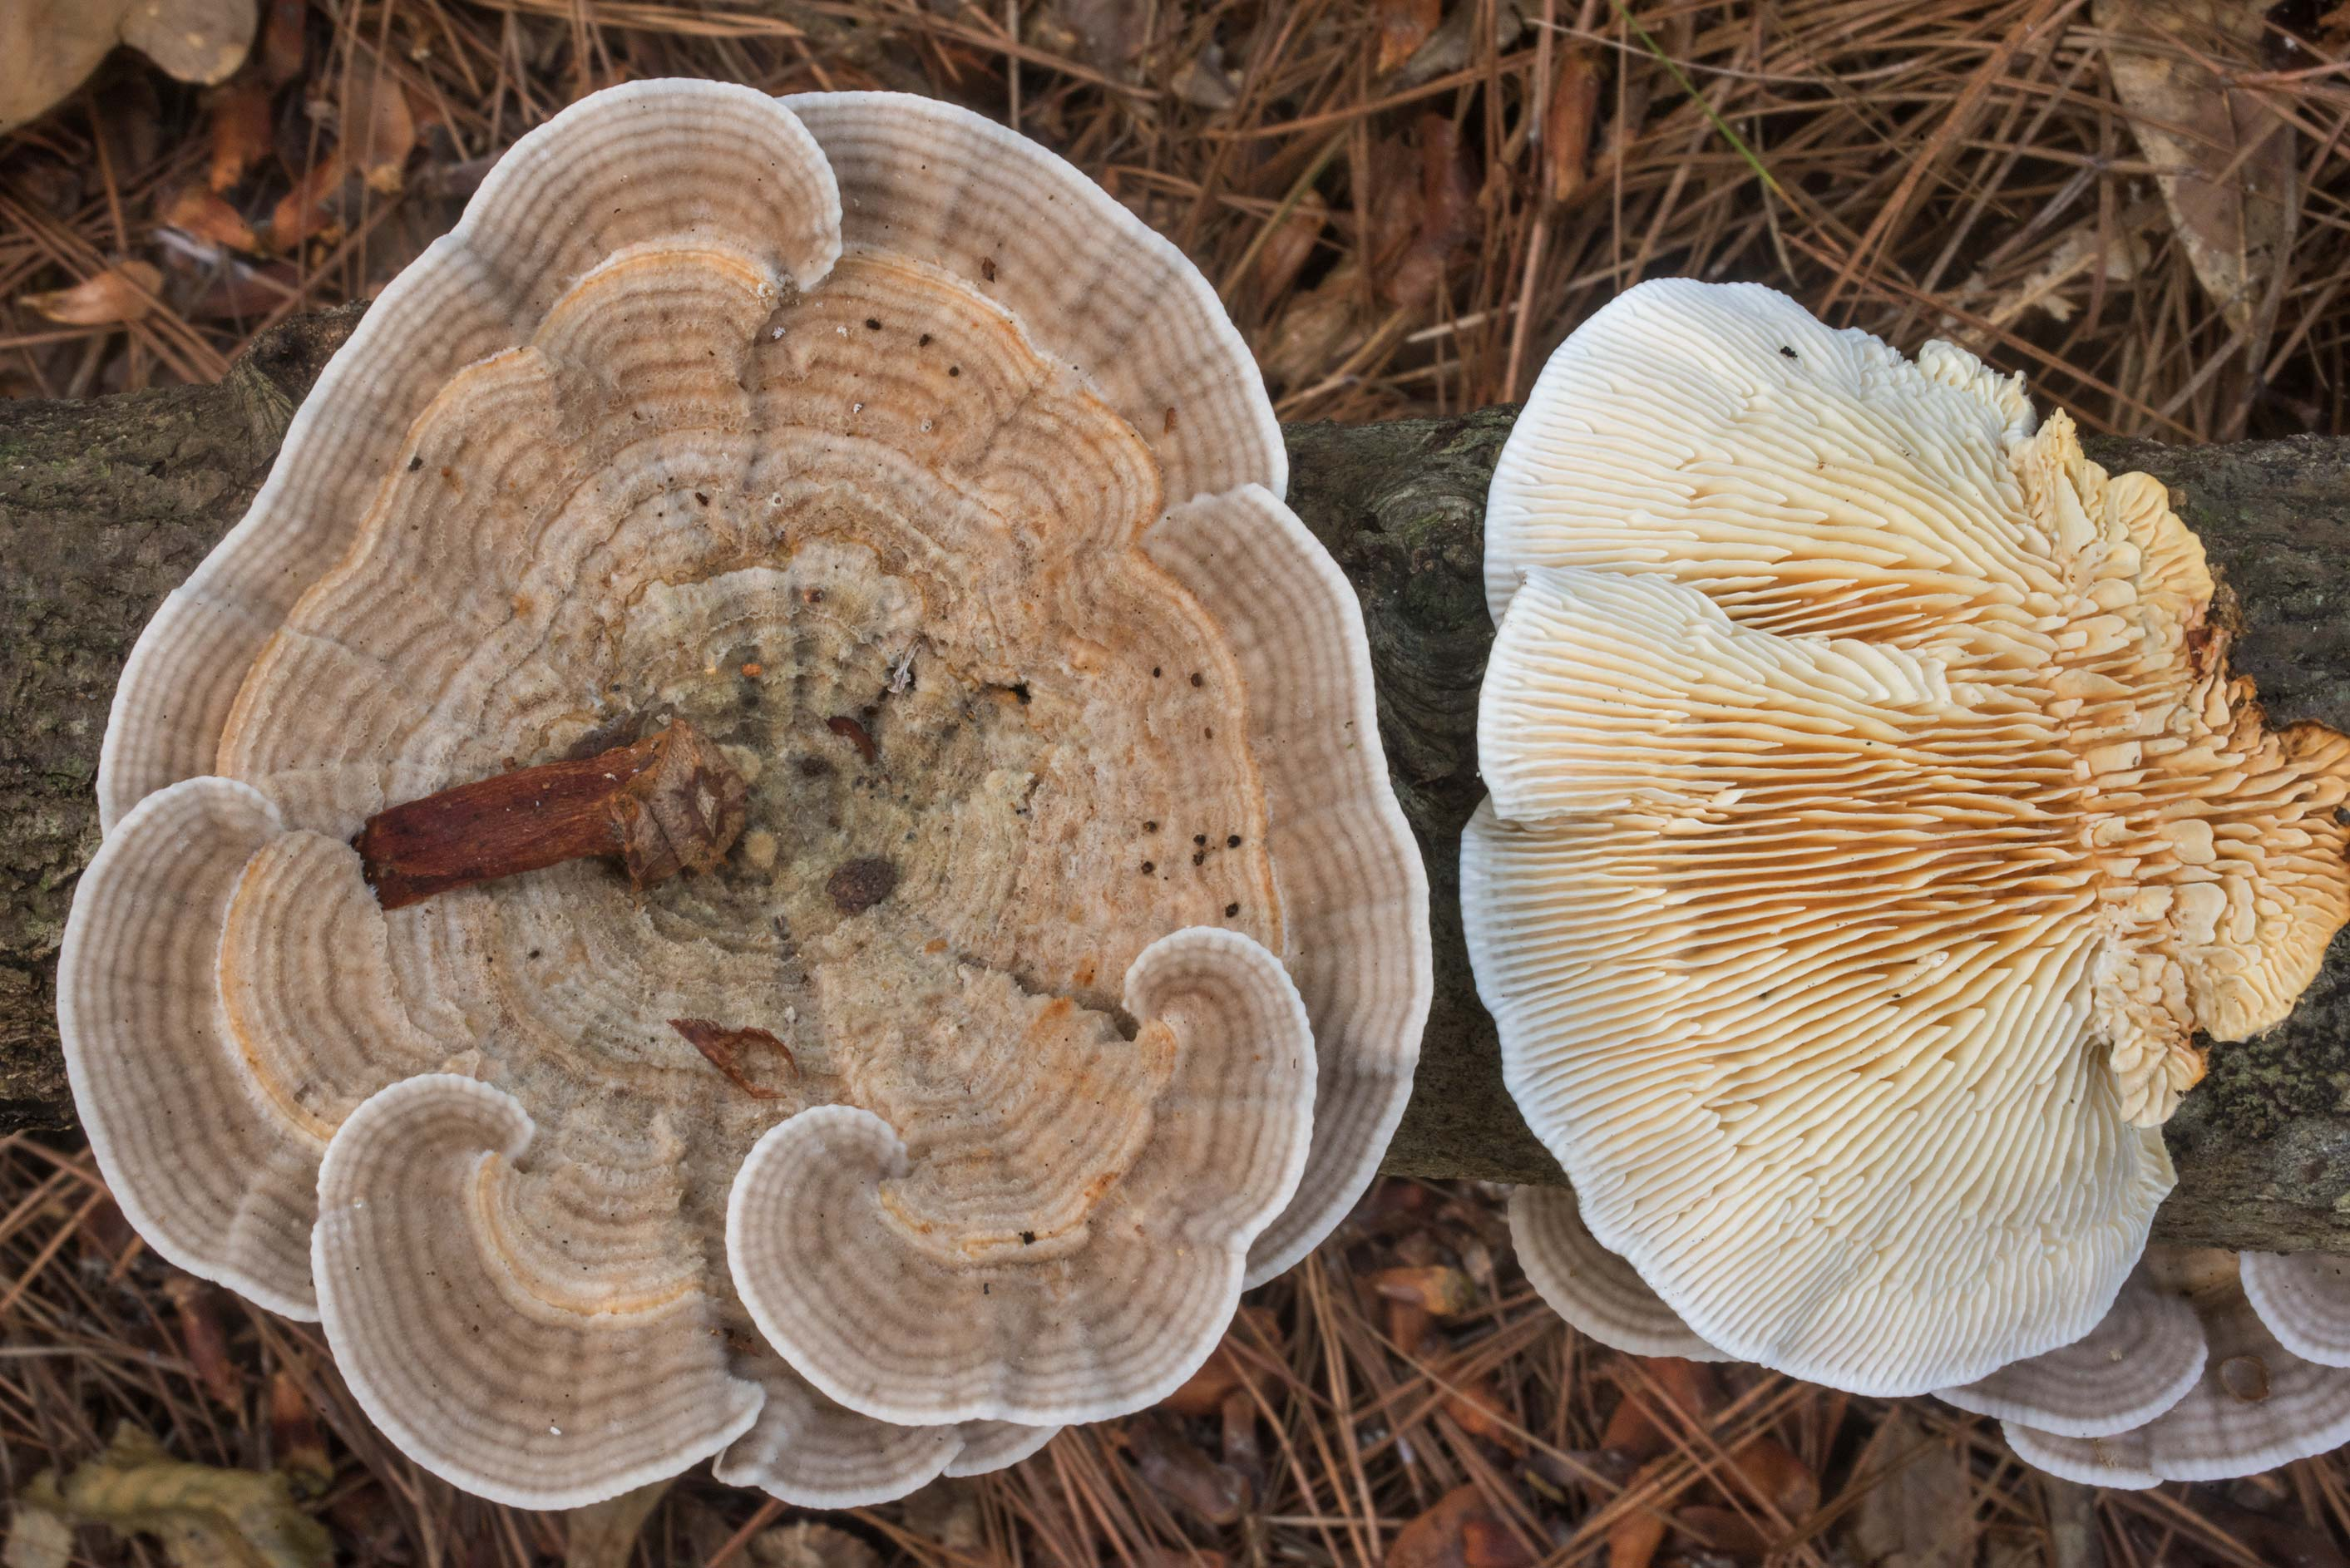 Birch mazegill mushrooms (Lenzites betulina) on a...National Forest. Cleveland, Texas